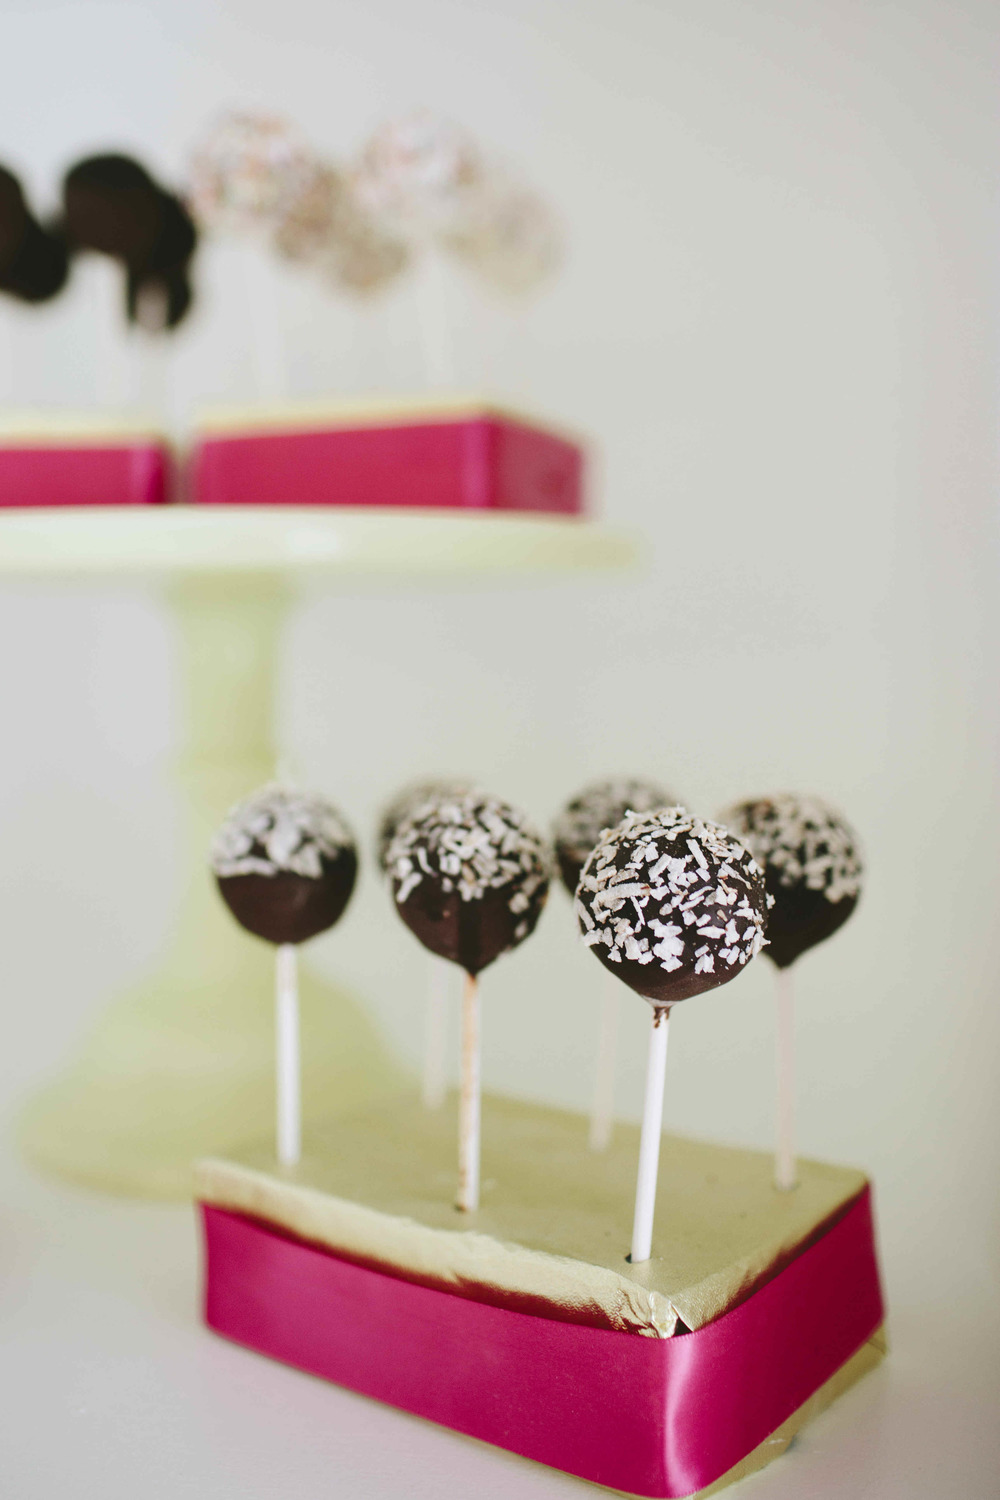 AshevilleFolk Summer City Guide: Charlotte NC with Megan Gielow. WOW Factor Cakes. WFC creates the most unique, beautiful cakes. Stop in the shop for cake pops and more!